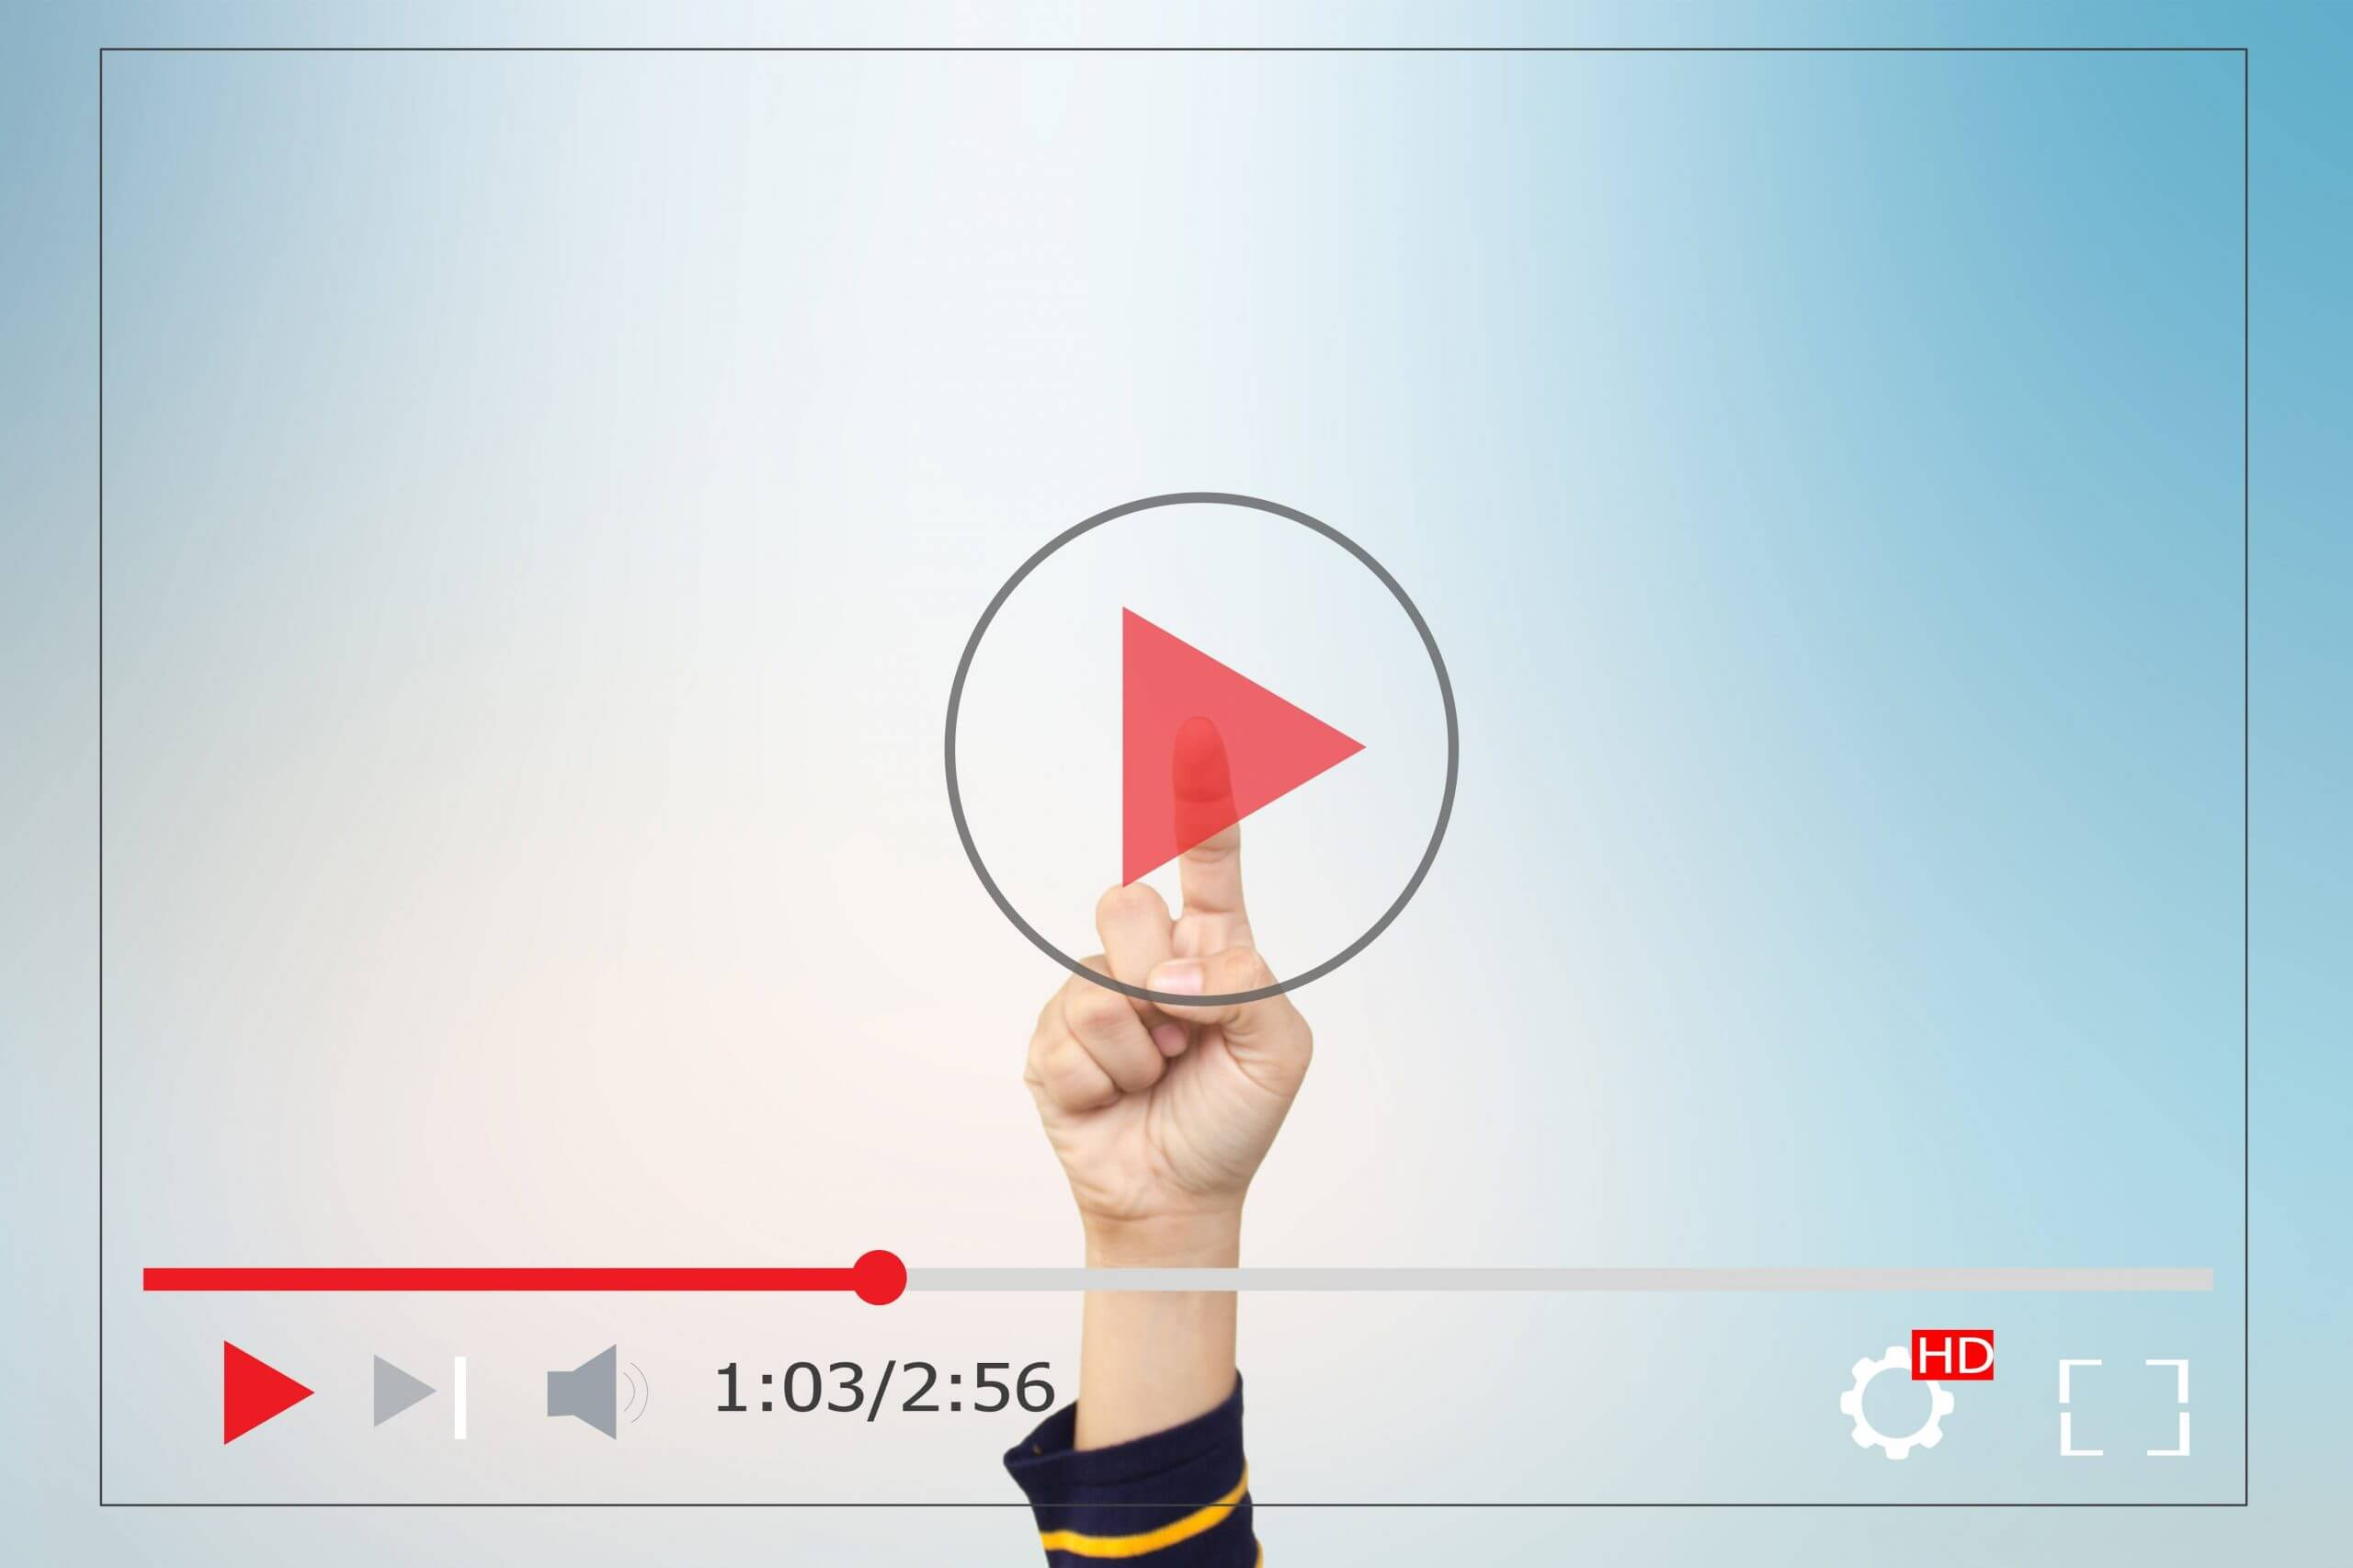 Video is Necessary for Impactful Digital Marketing